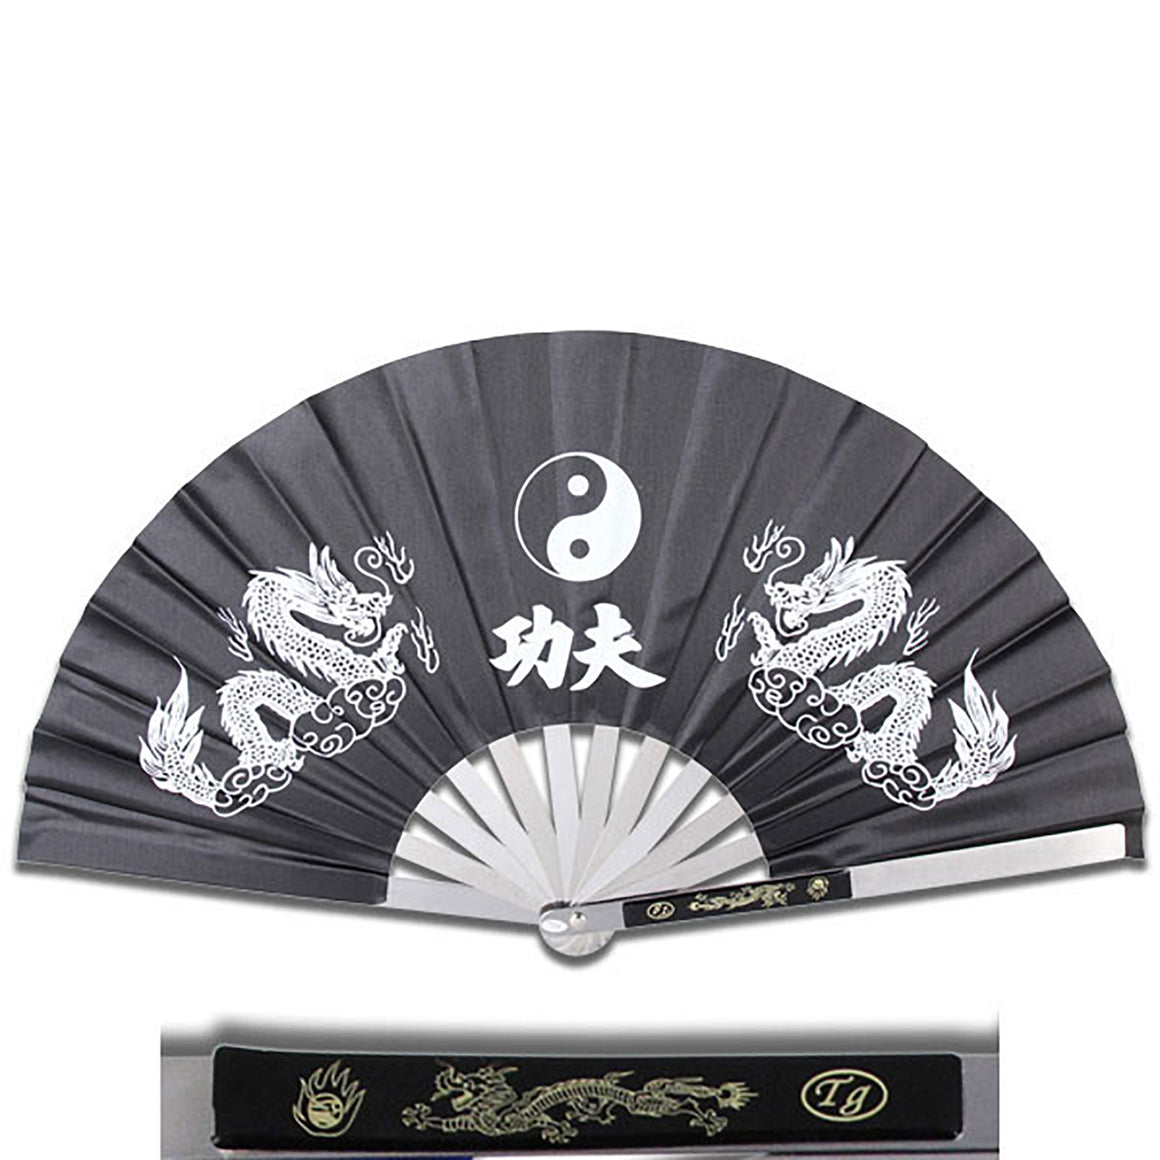 2510-CBK Kung Fu Fighting Fan